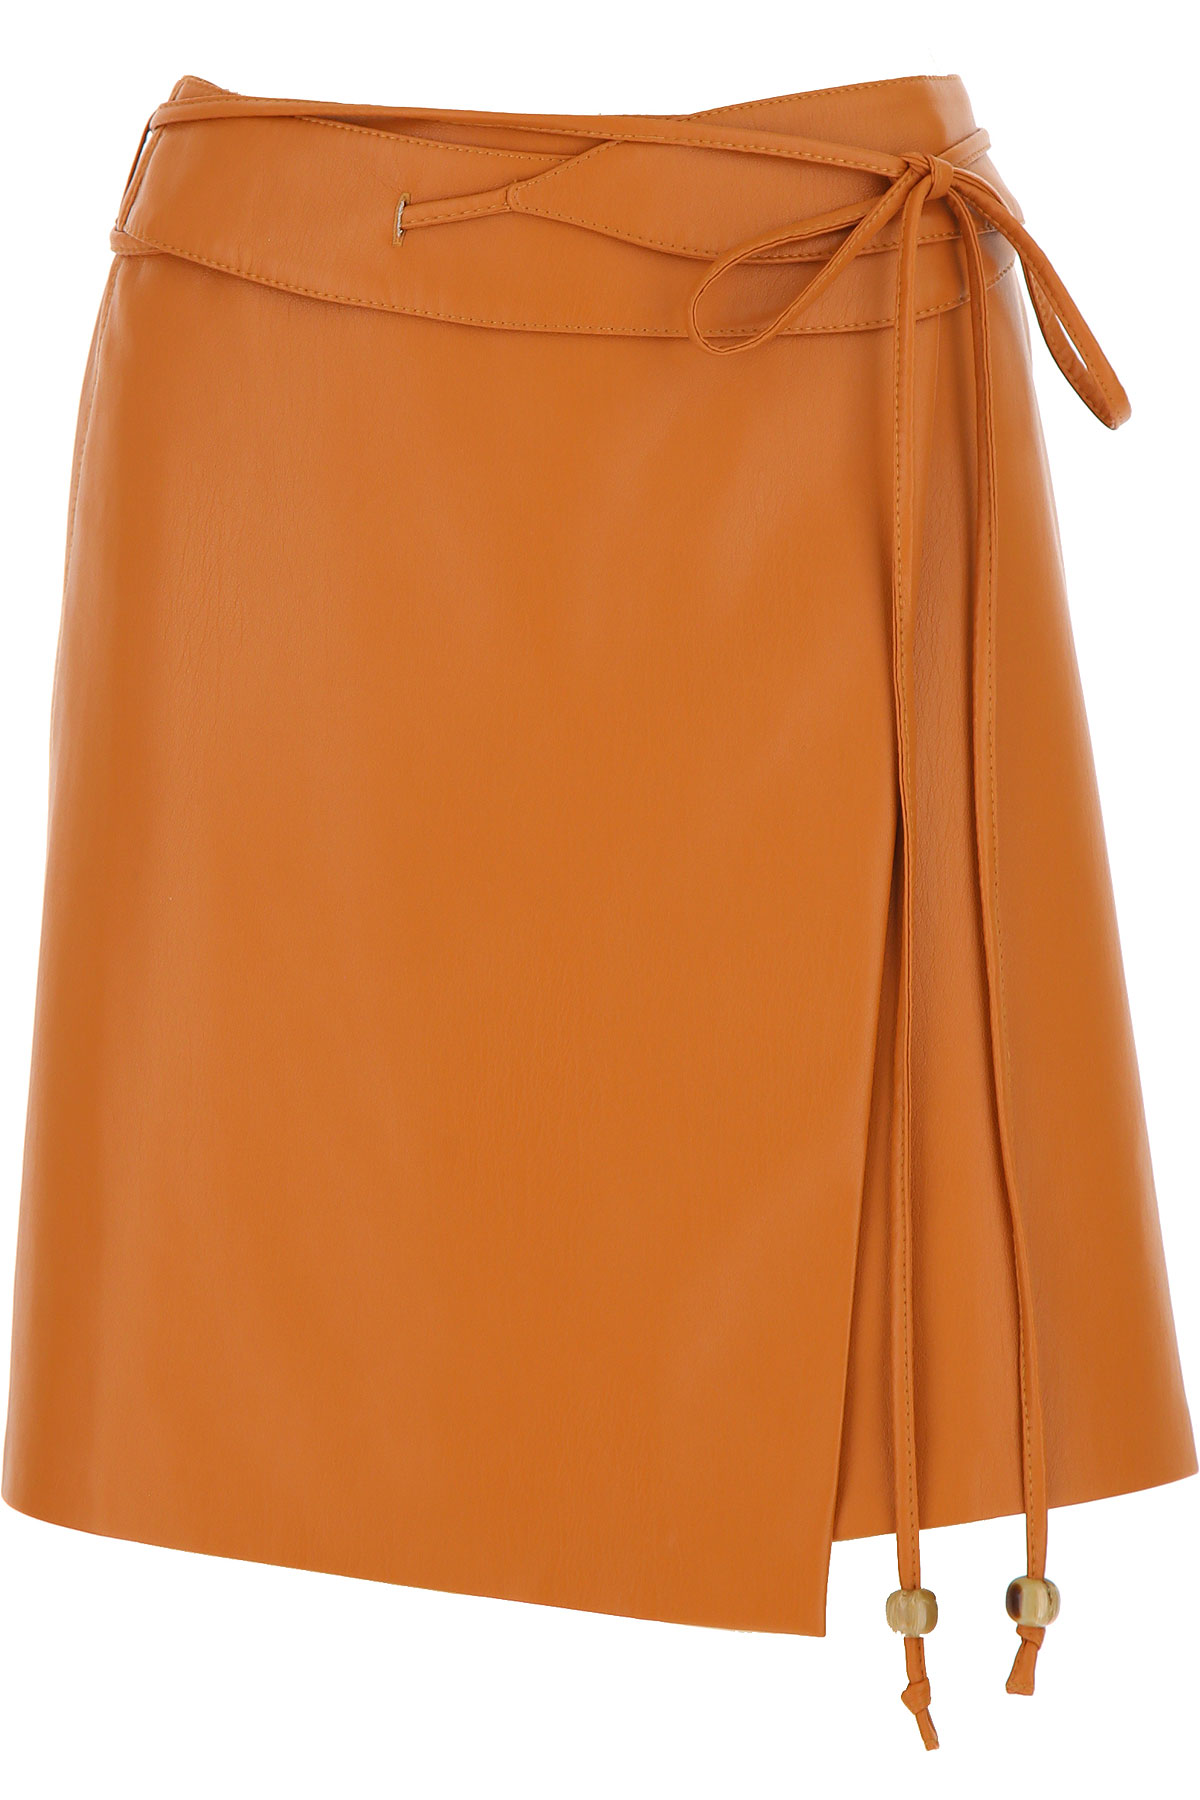 Nanushka Skirt for Women On Sale, Luggage Brown, polyestere, 2019, M (IT 42 ) XS (IT 38)